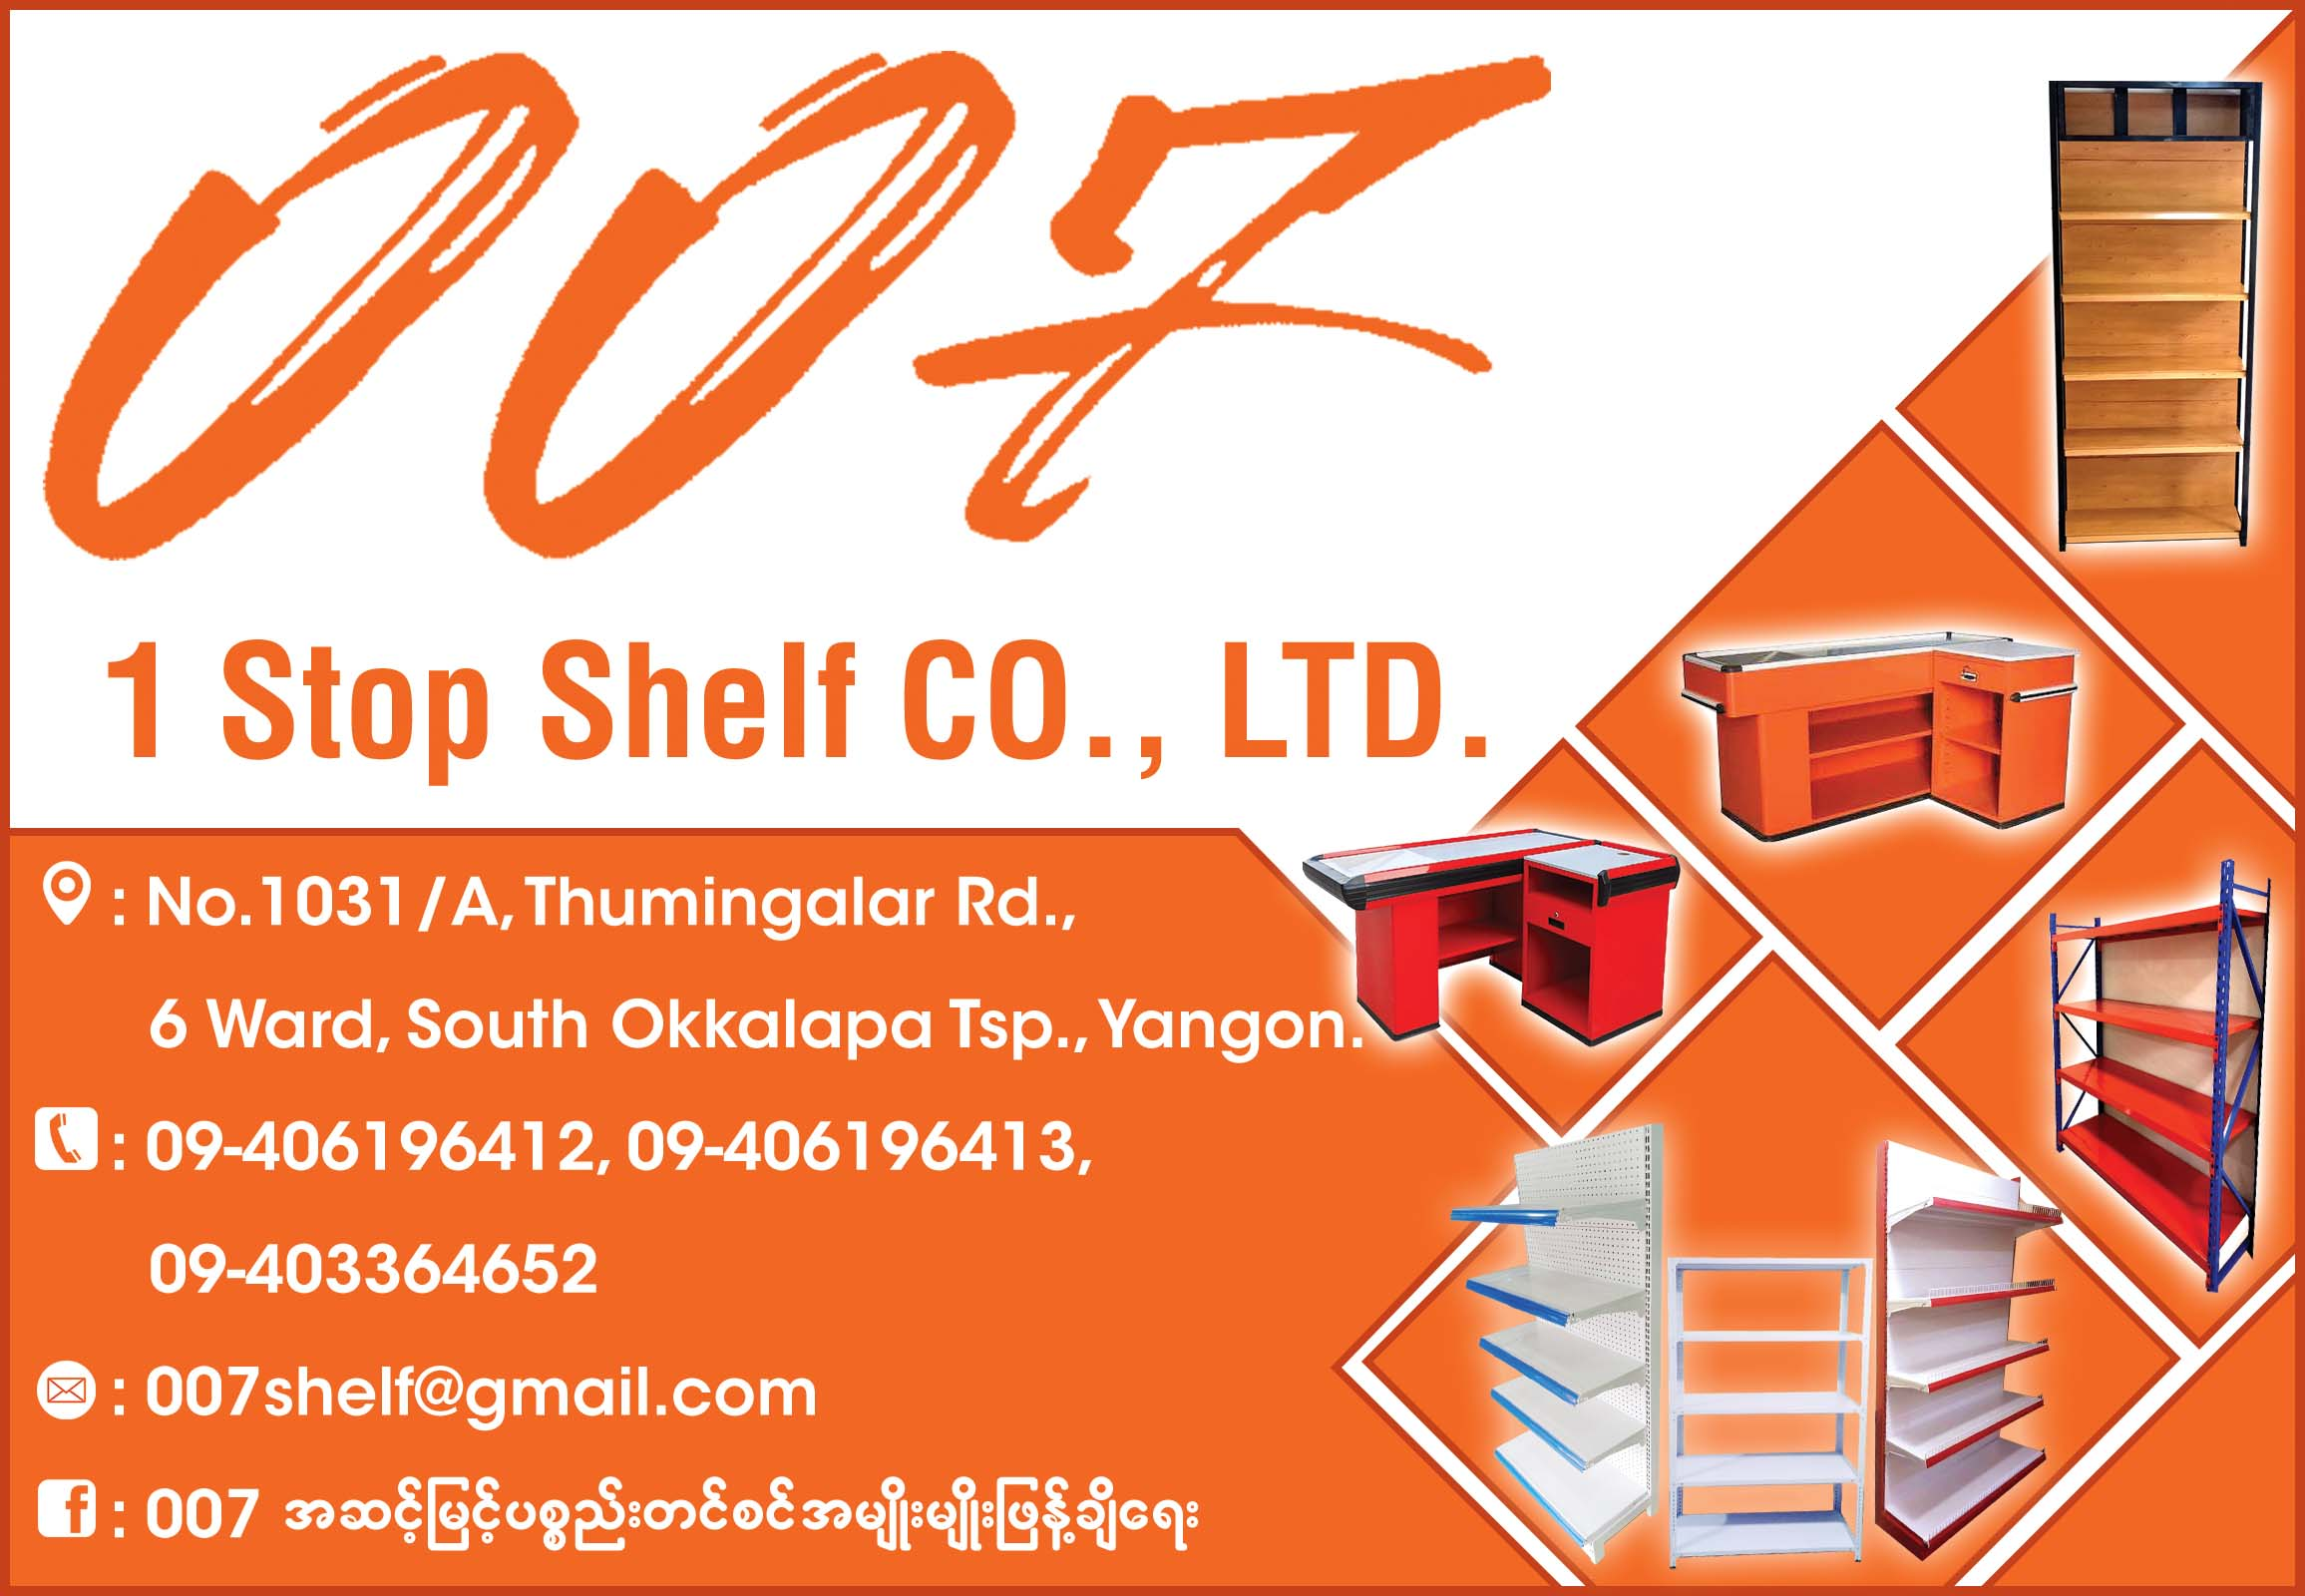 007 1 Stop Shelf Co., Ltd.